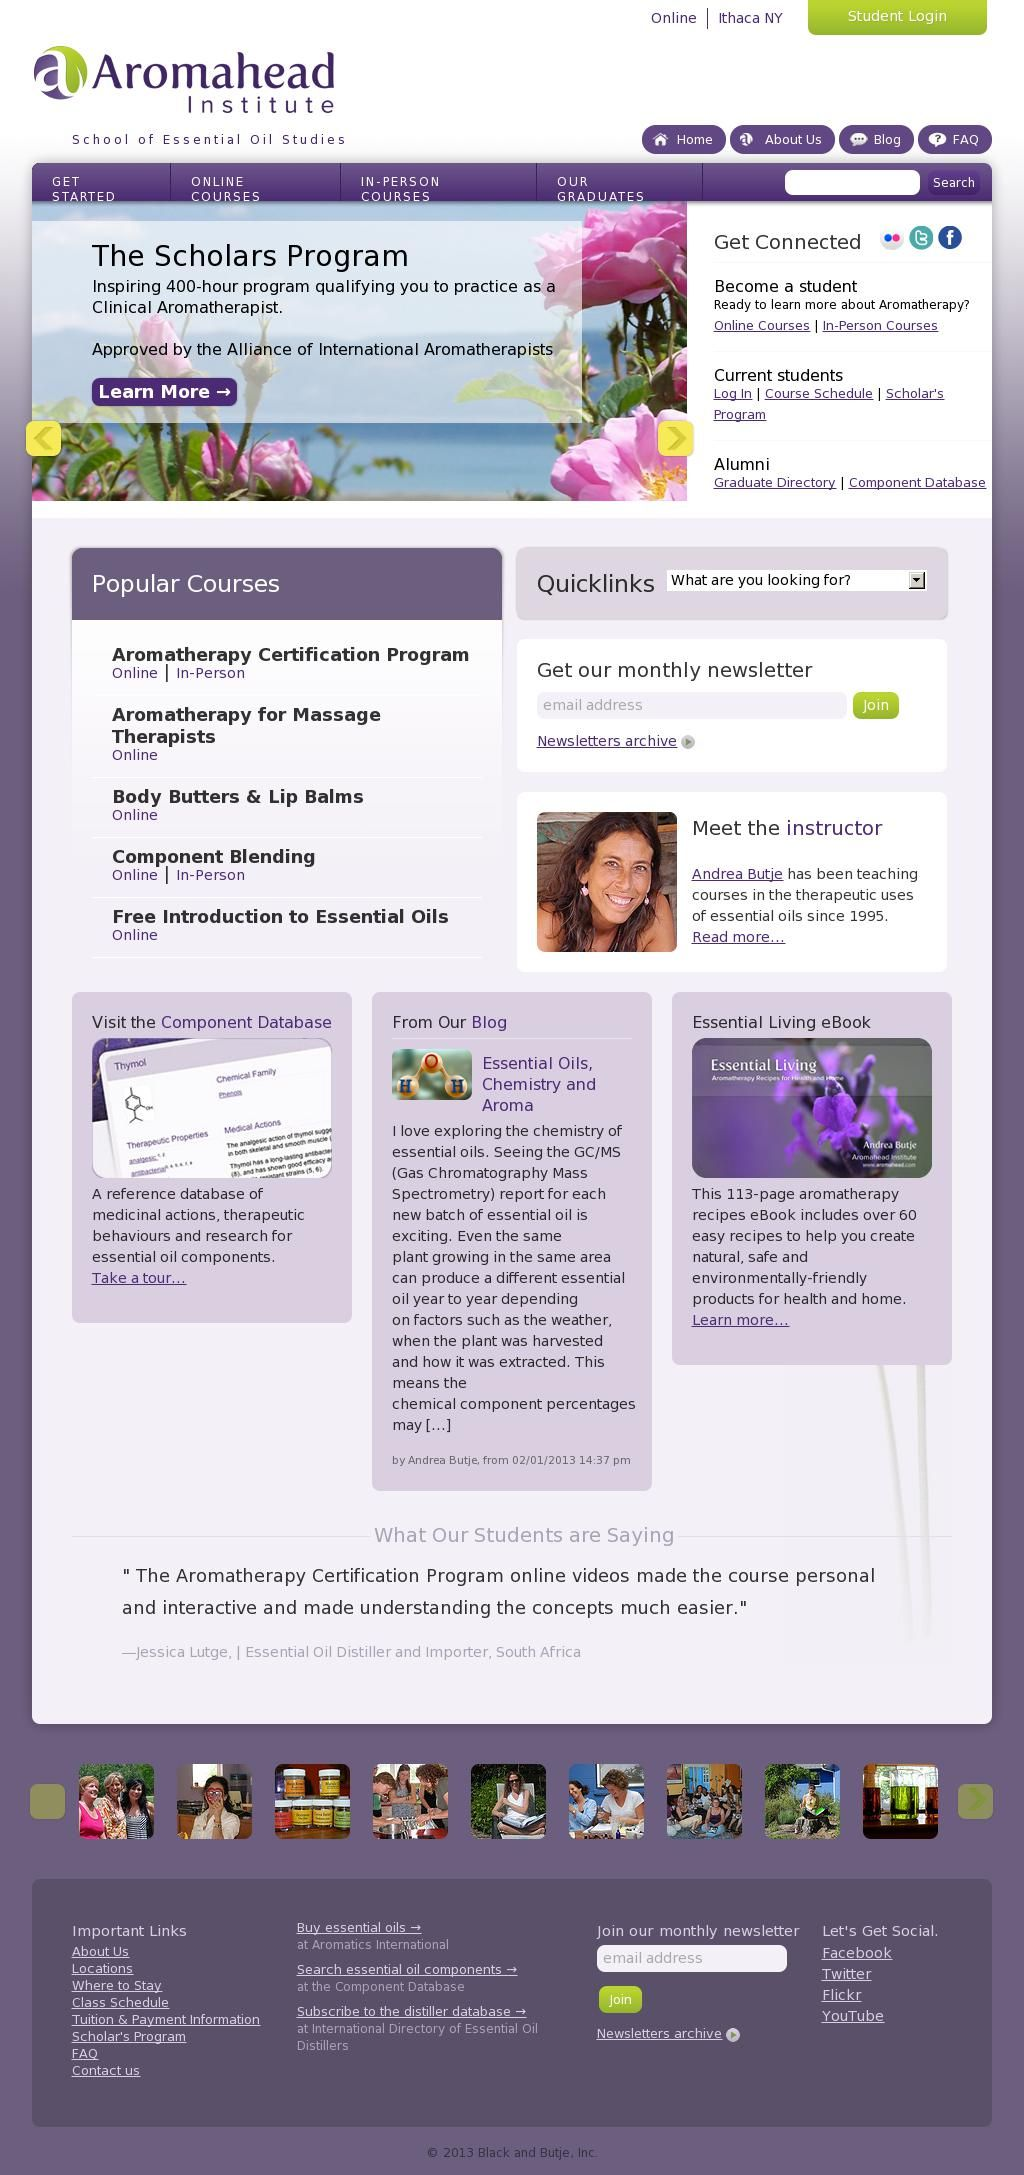 This Is A Great Course Aromatherapy Certification Program 235